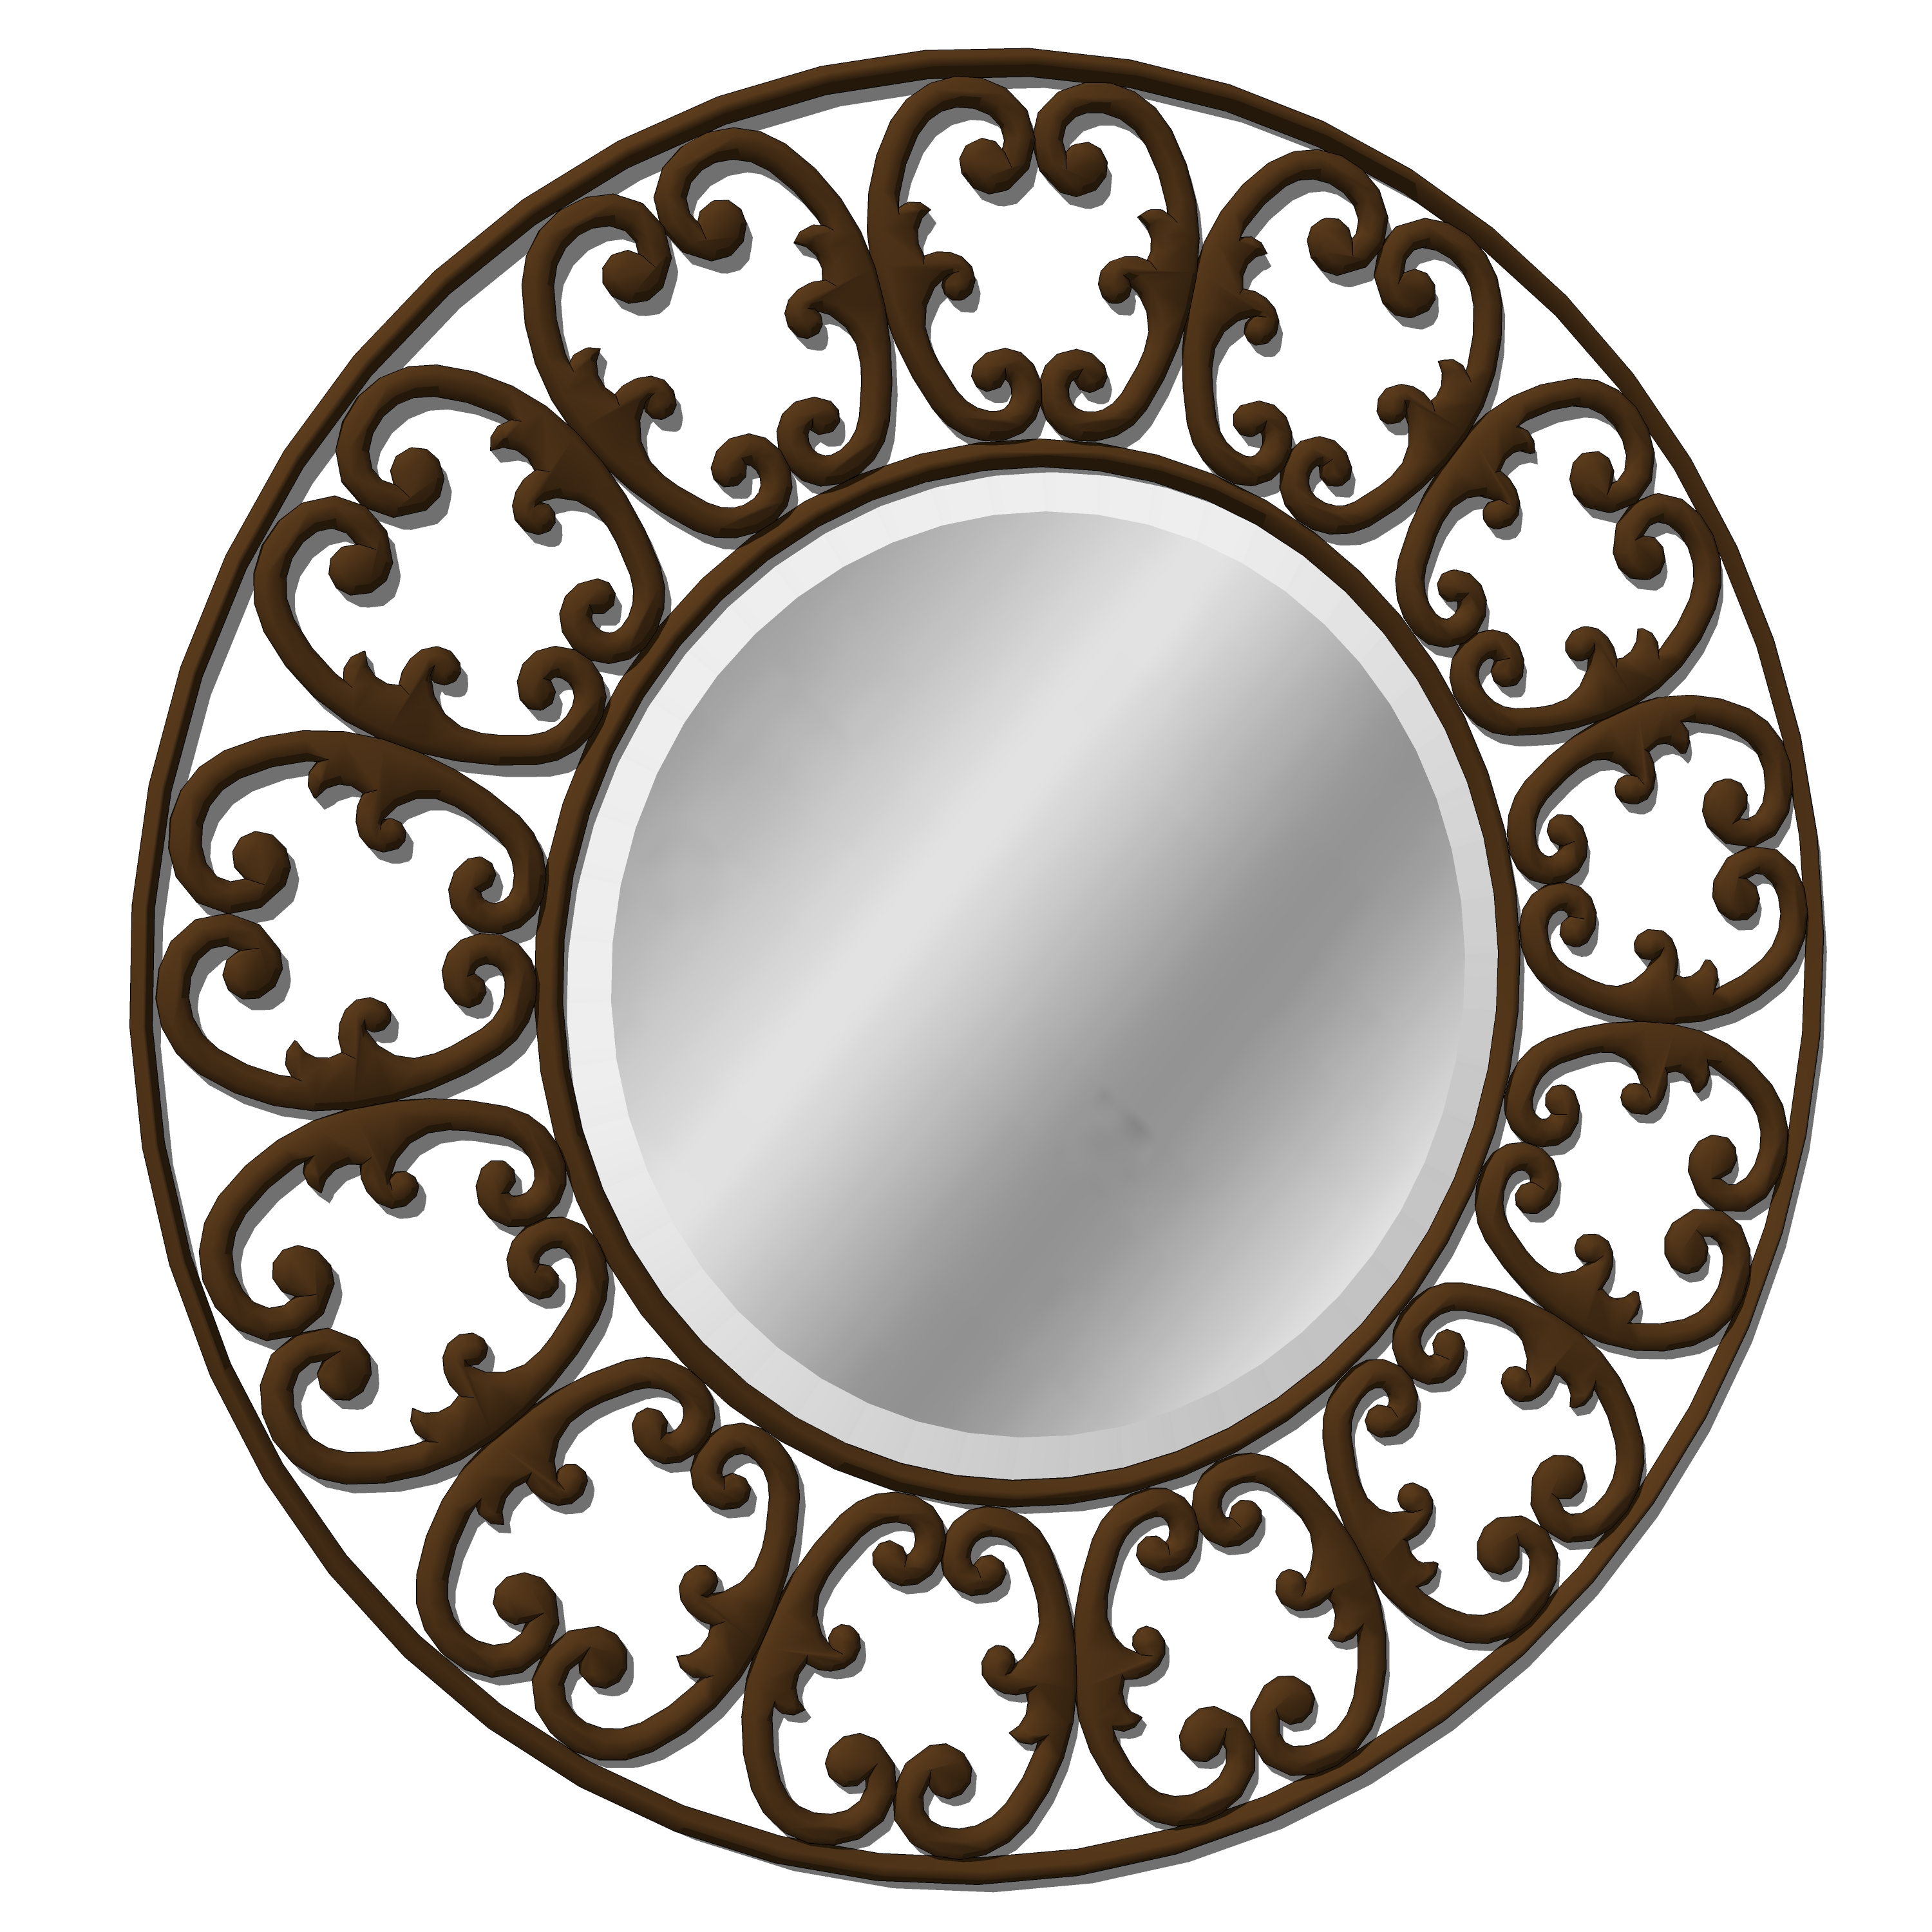 Round scrolled iron mirror with wrought iron side ....